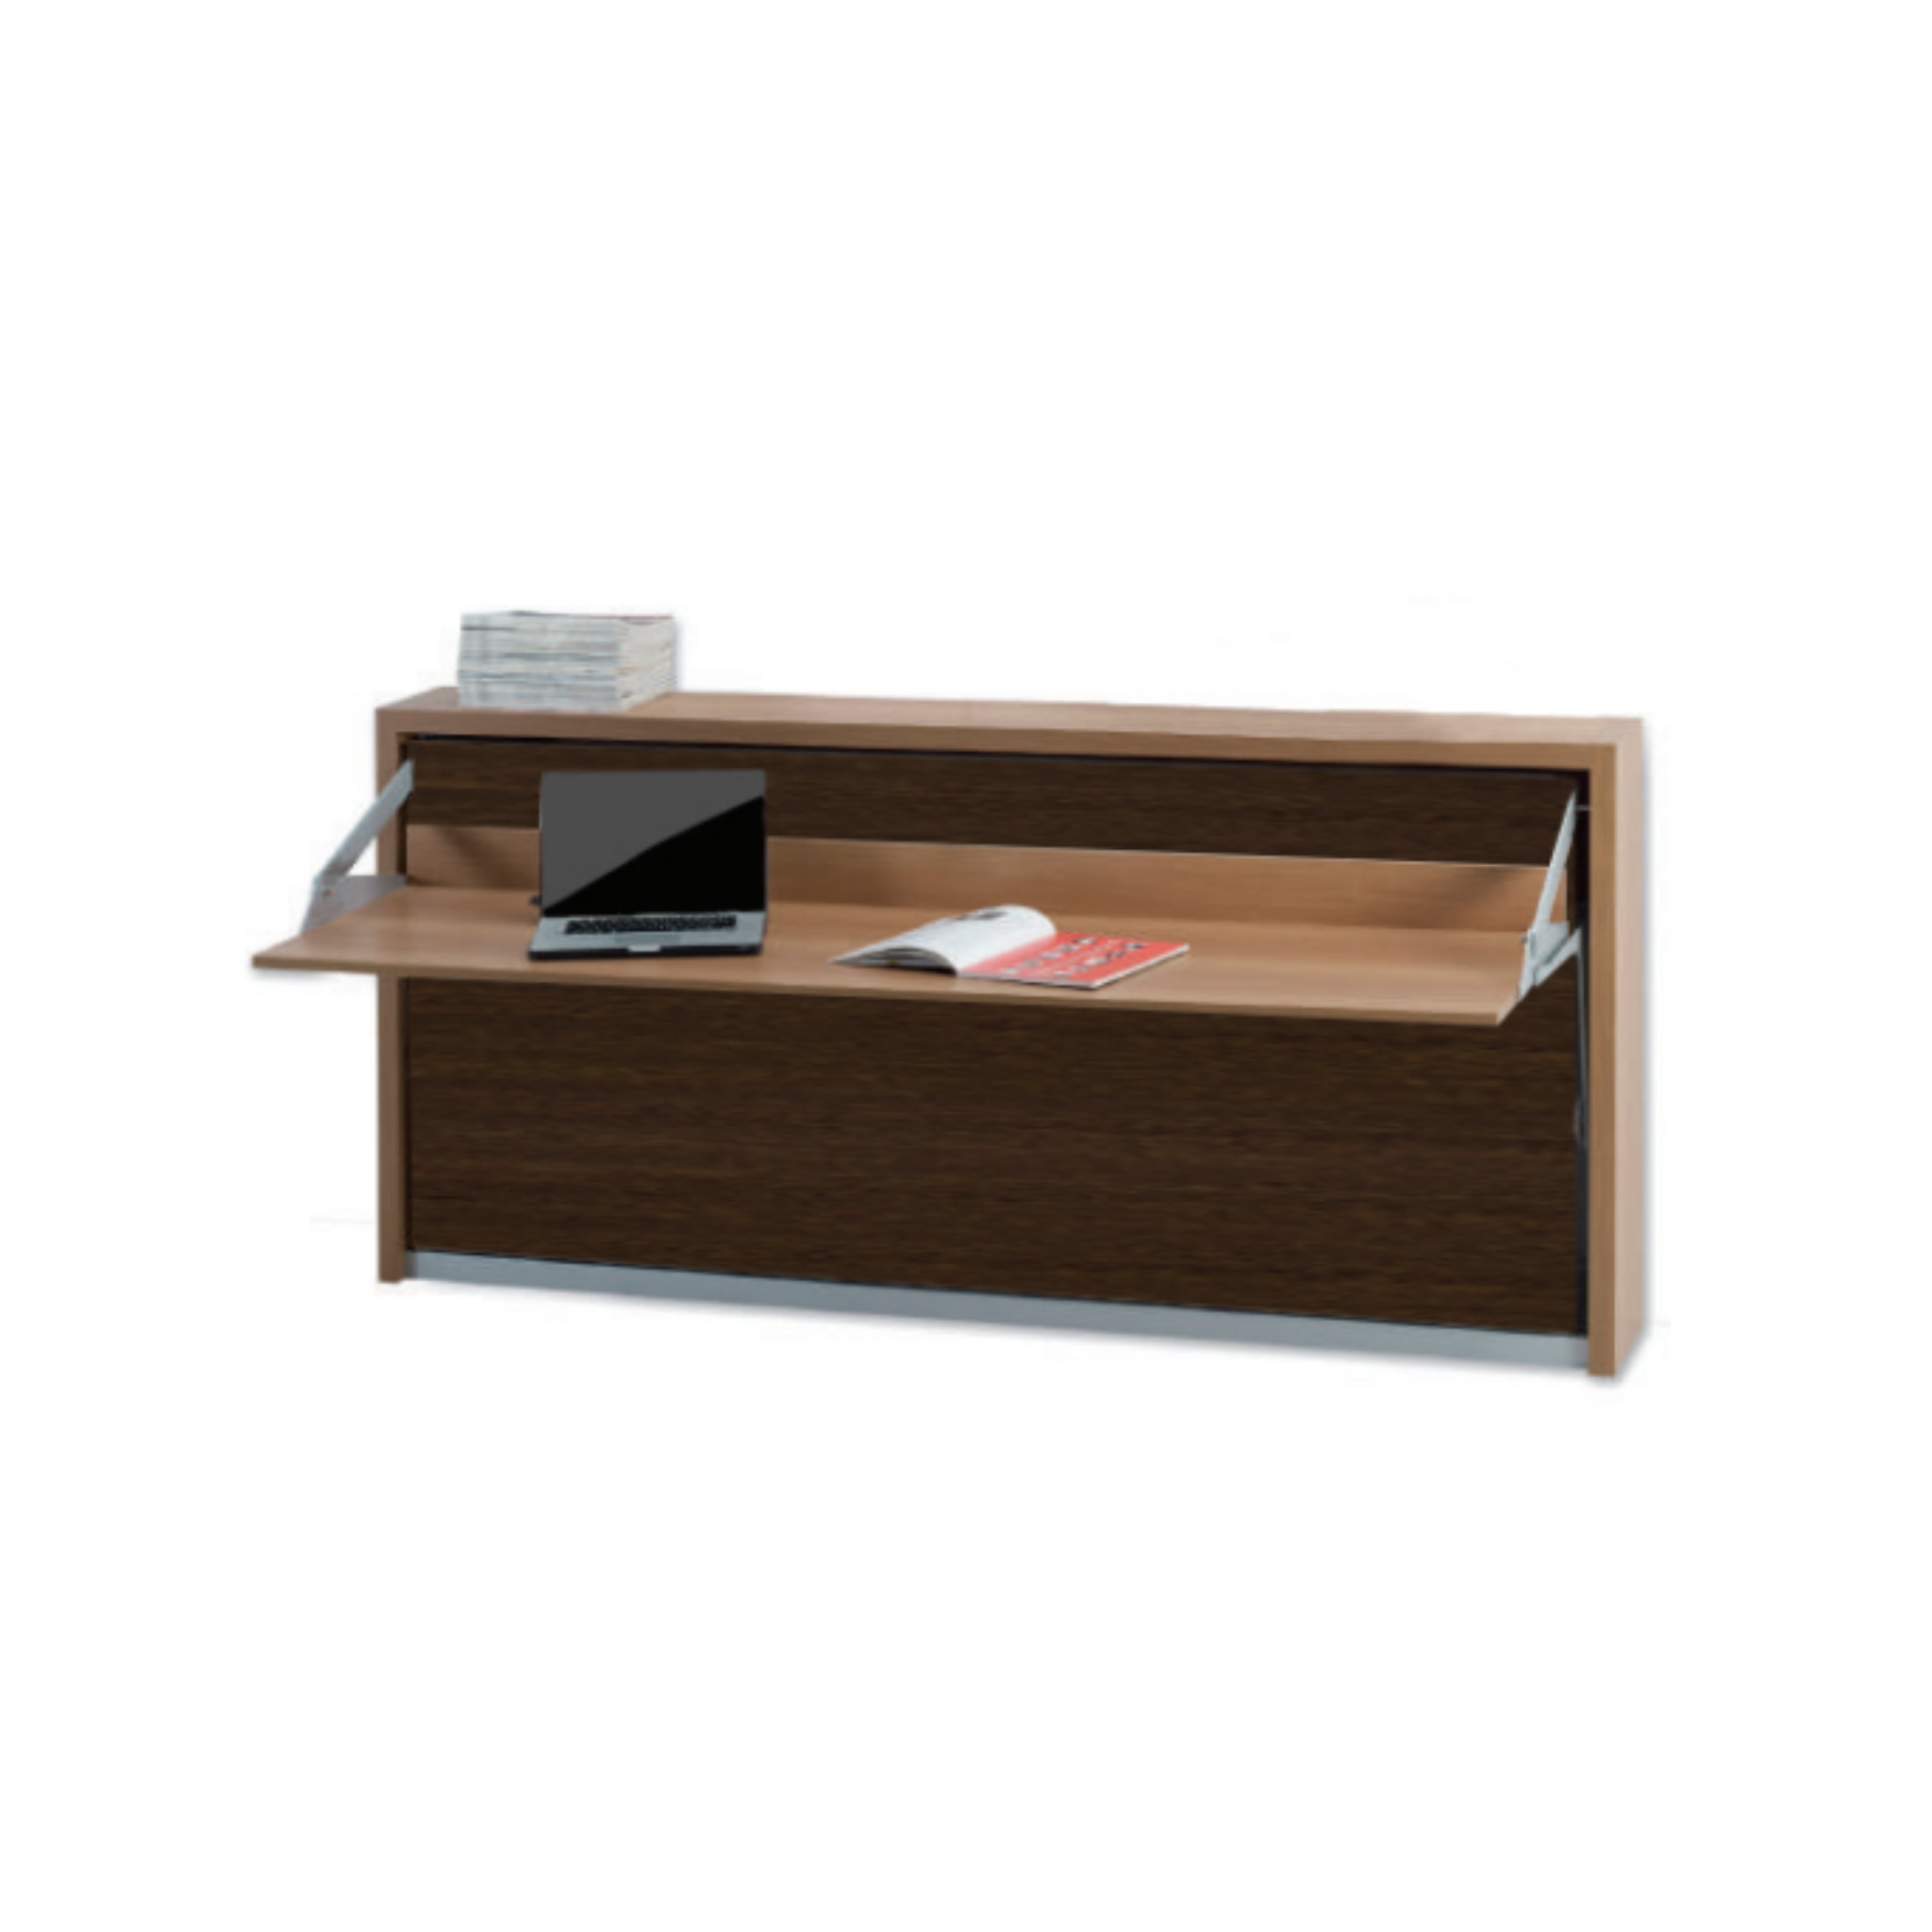 Horizontal Twin Bed With Floating Desk, Twin Murphy Bed Desk Combination